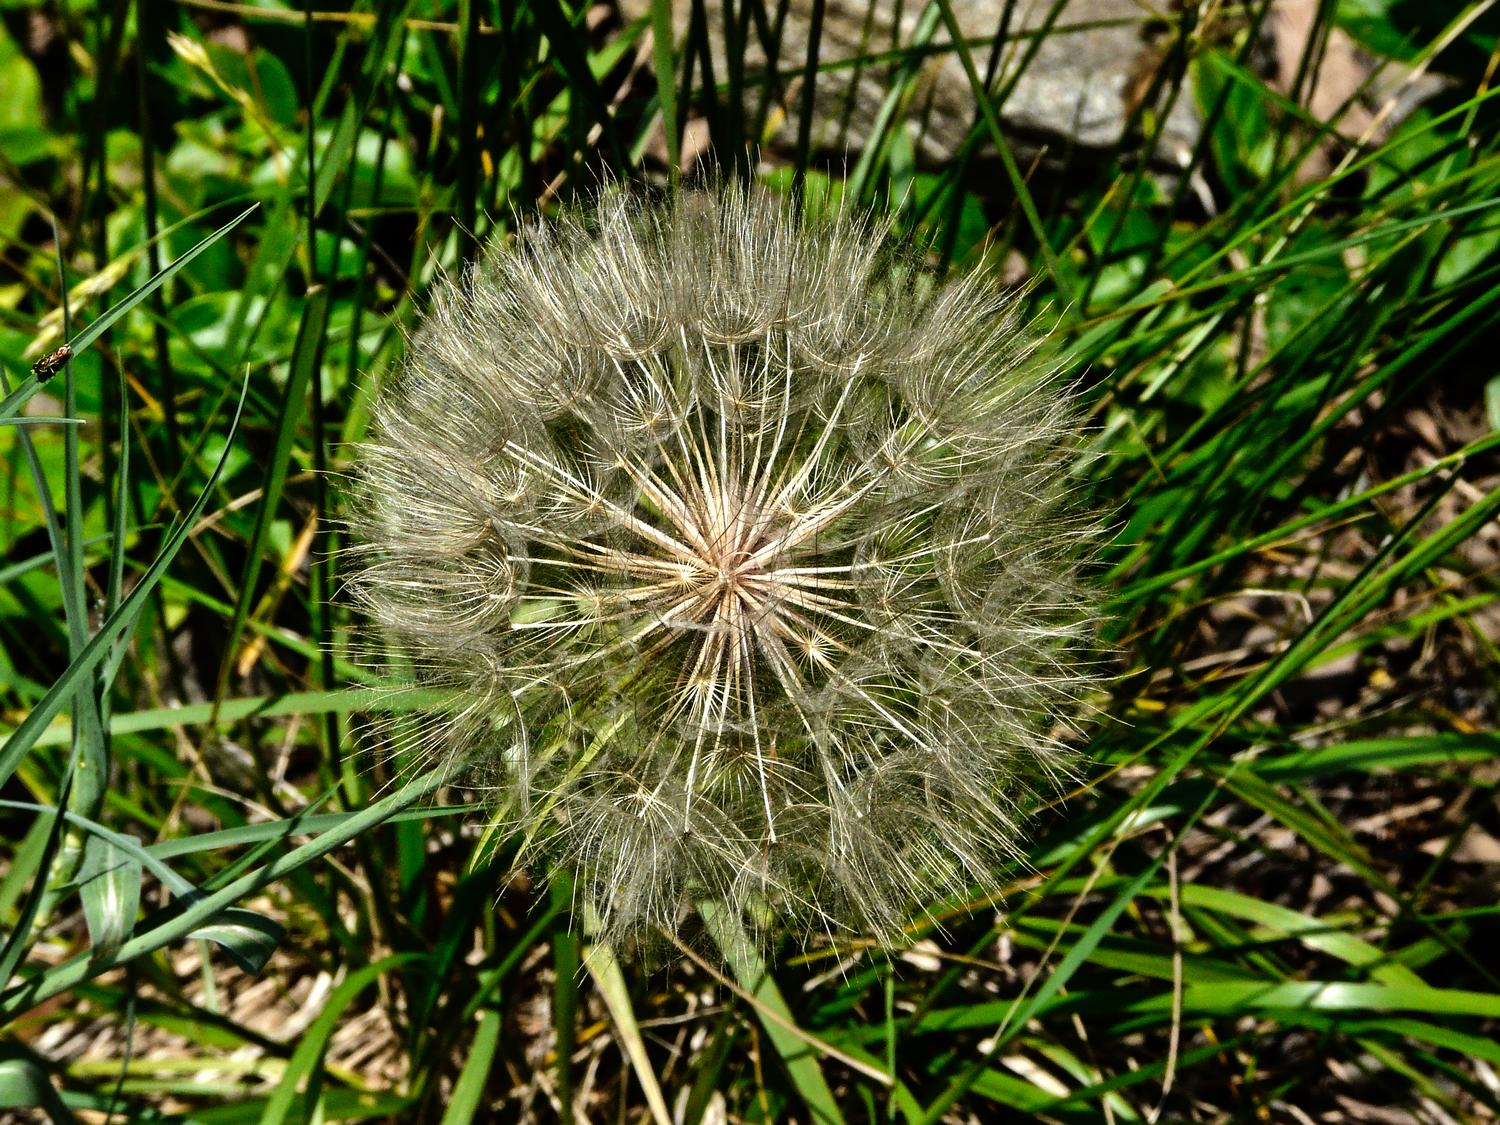 - We thought this was a giant, mutant dandelion puffball, but it's actually salsify, sometimes called  goatsbeard. - Panasonic DMC-FZ18 - - art  - photography - by Tony Karp